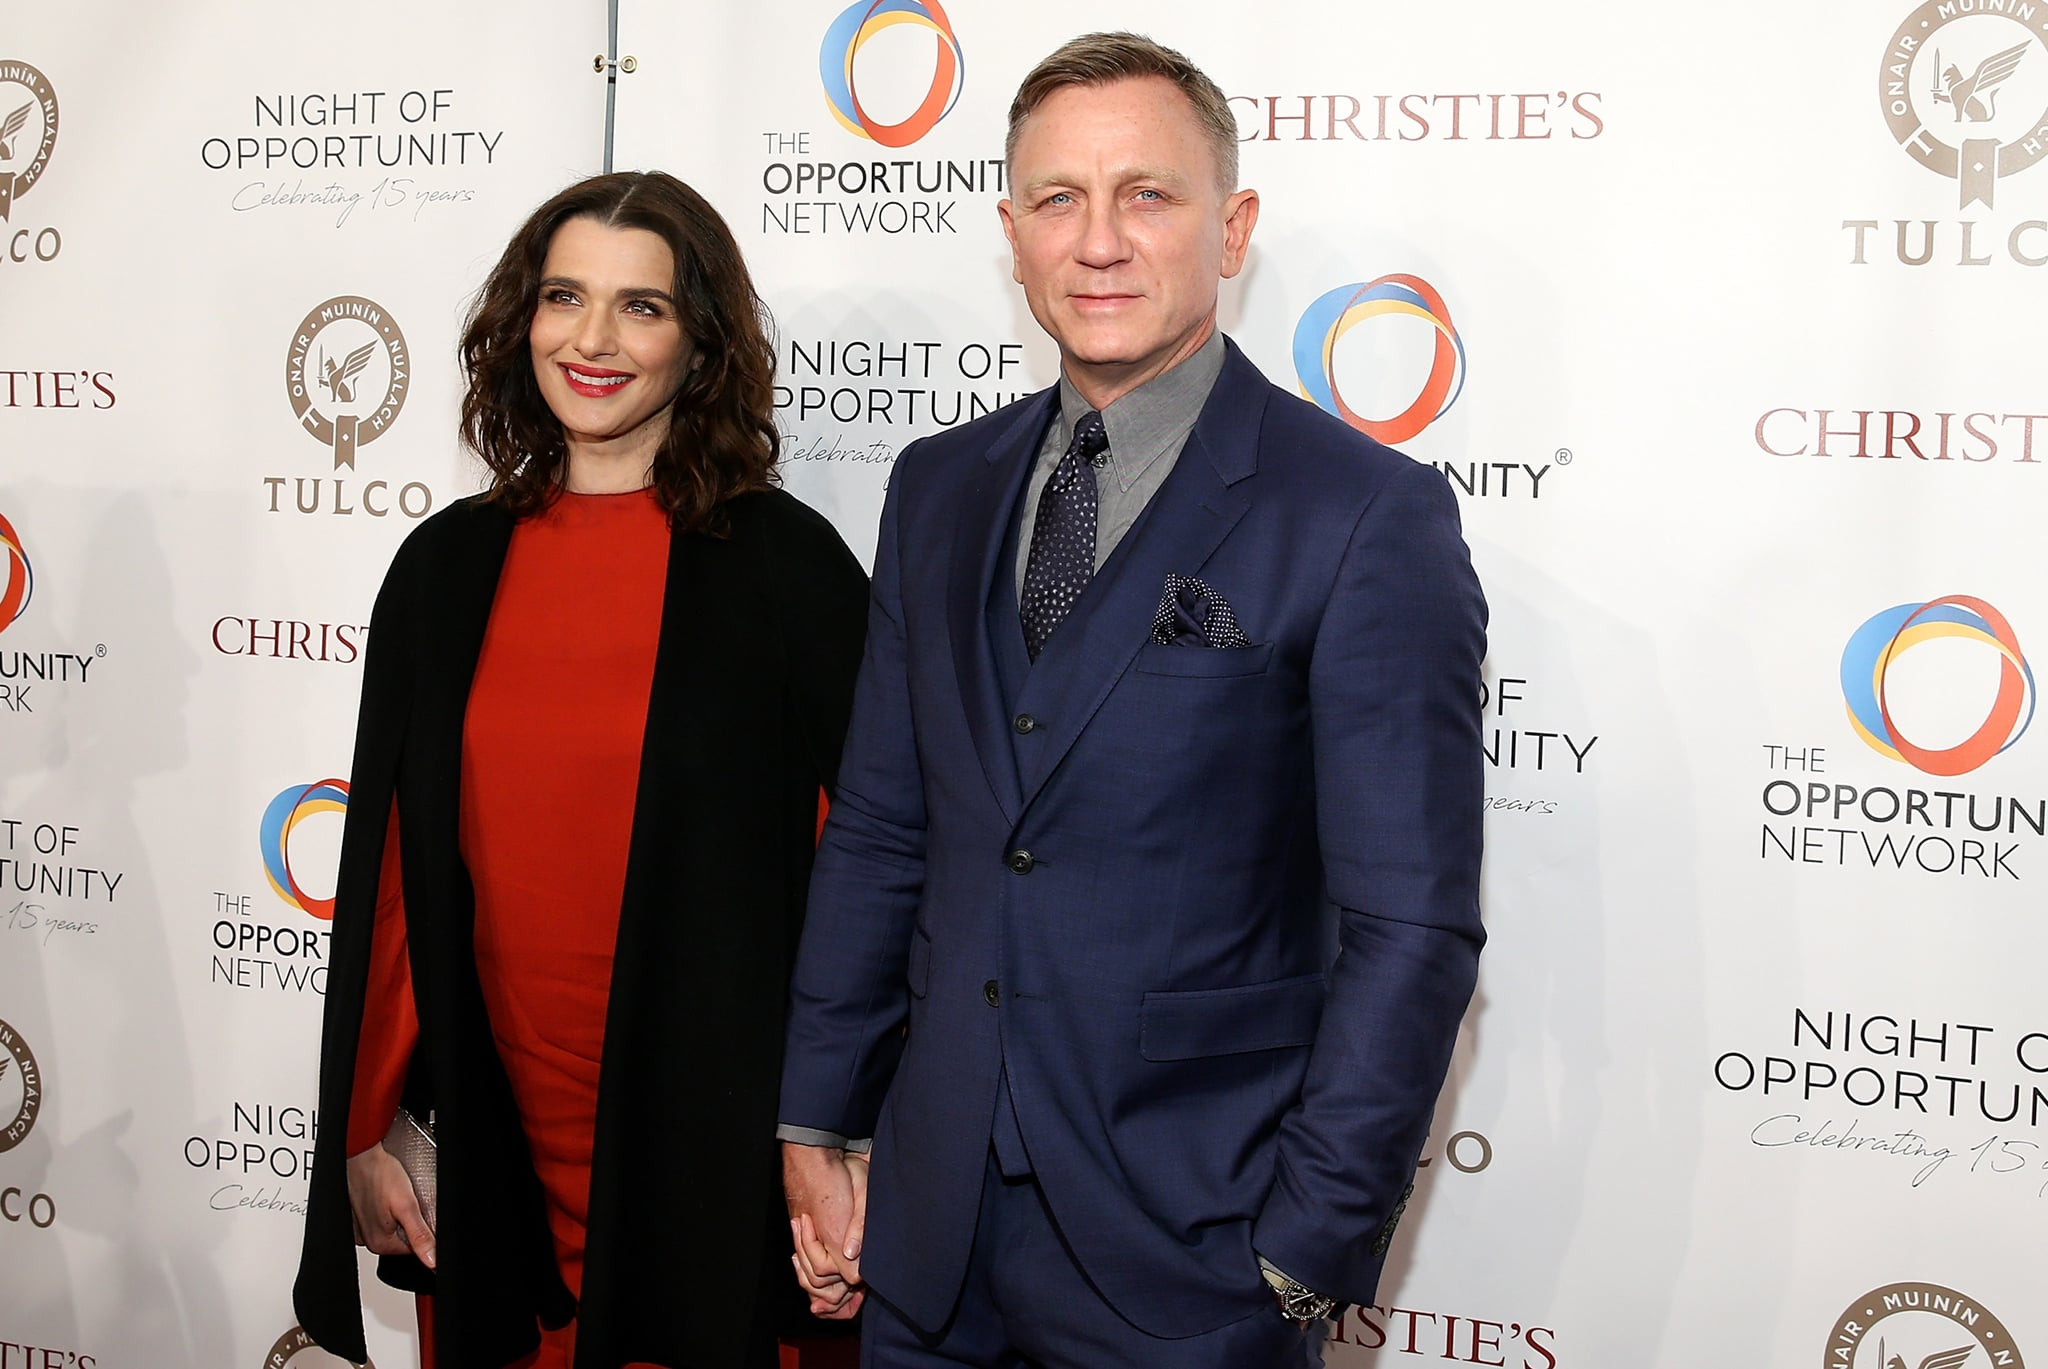 NEW YORK, NY - APRIL 09:  Actors Rachel Weisz and Daniel Craig attend the  Opportunity Network's 11th Annual Night of Opportunity at Cipriani Wall Street on April 9, 2018 in New York City.  (Photo by Bennett Raglin/WireImage)